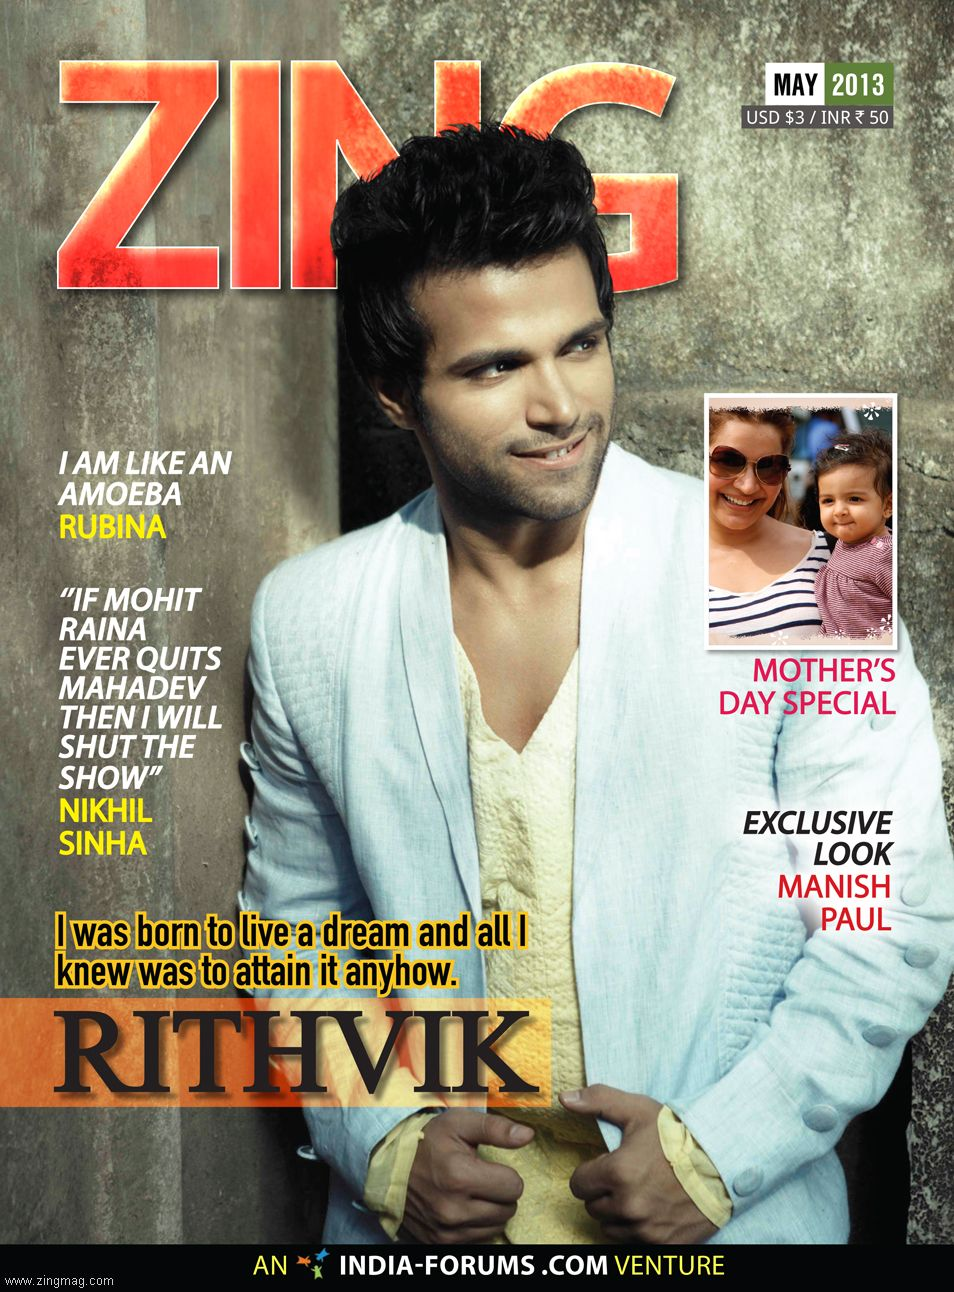 I was born to live a dream and all I knew was to attain it anyhow. Rithvik